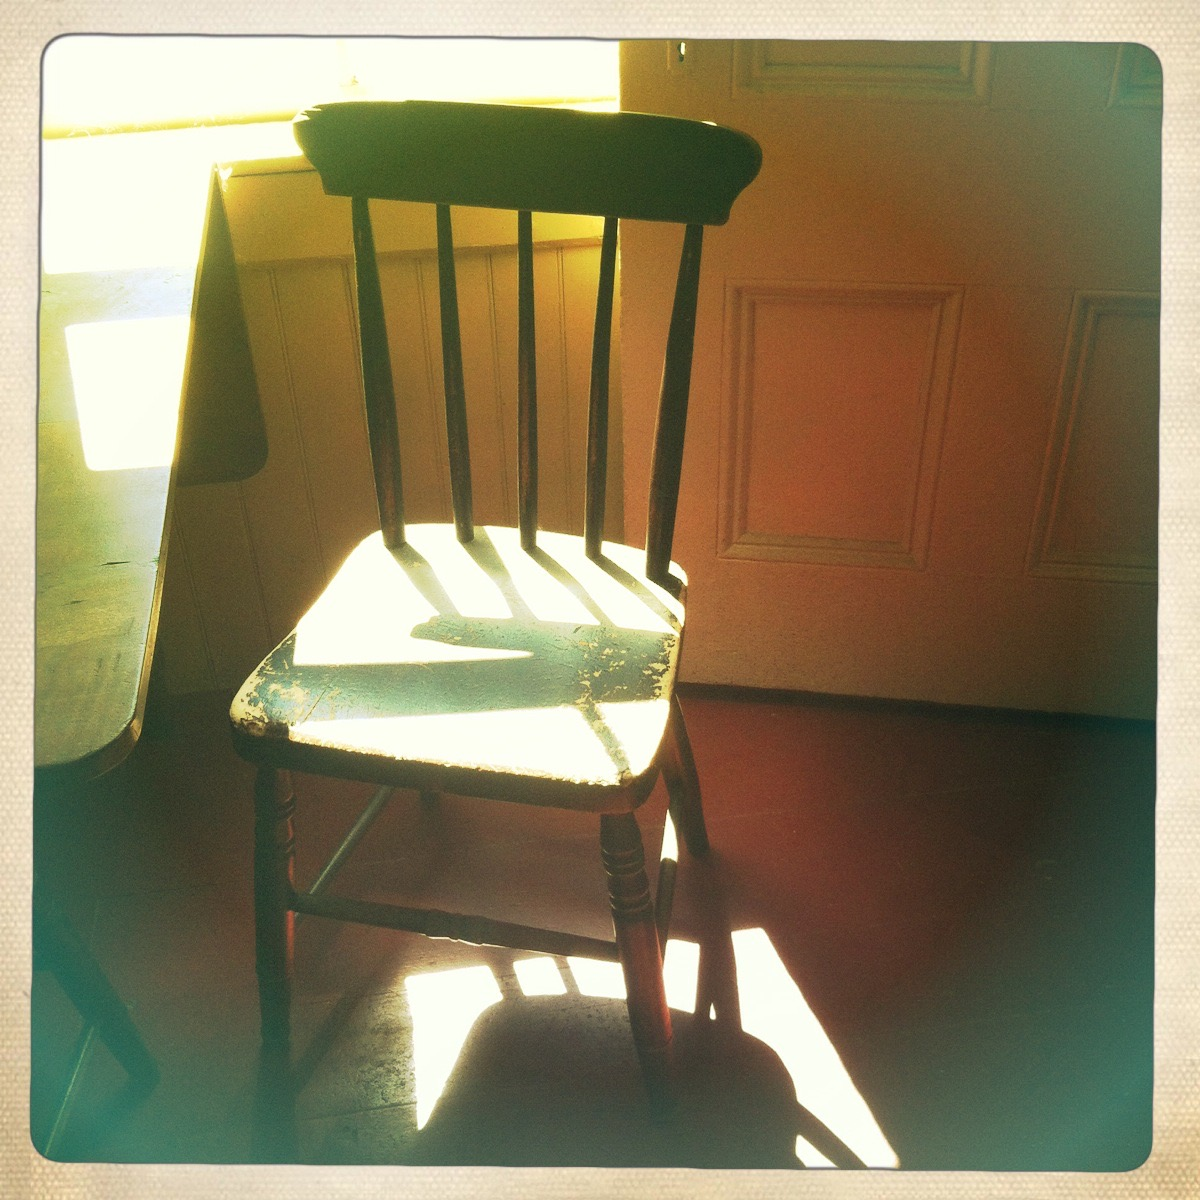 antique ladderback chair in the Frost farm kitchen